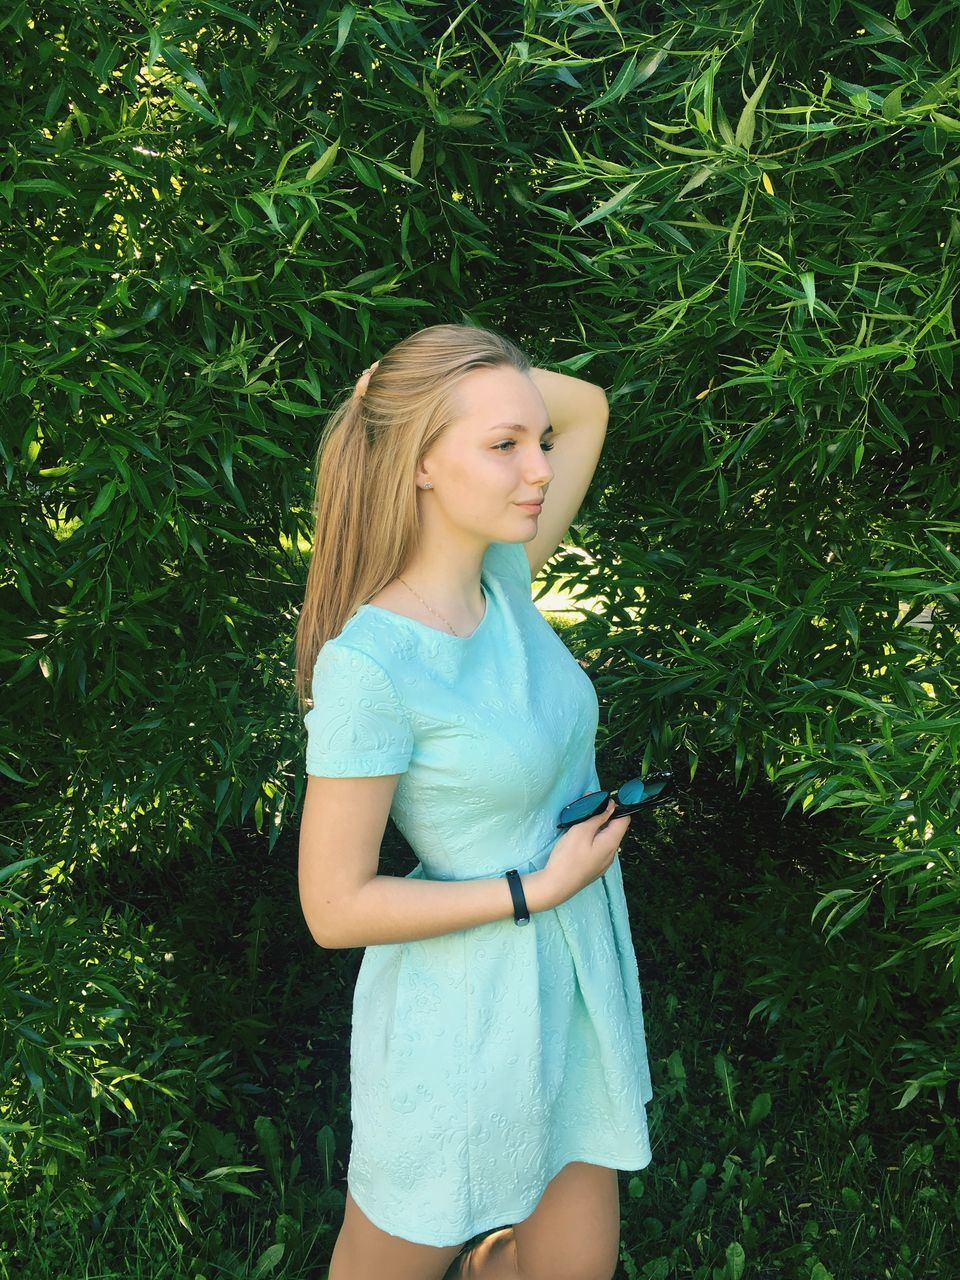 one person, real people, young adult, teenage girls, standing, casual clothing, grass, plant, long hair, young women, growth, green color, teenager, leisure activity, day, outdoors, nature, lifestyles, blond hair, tree, smiling, people